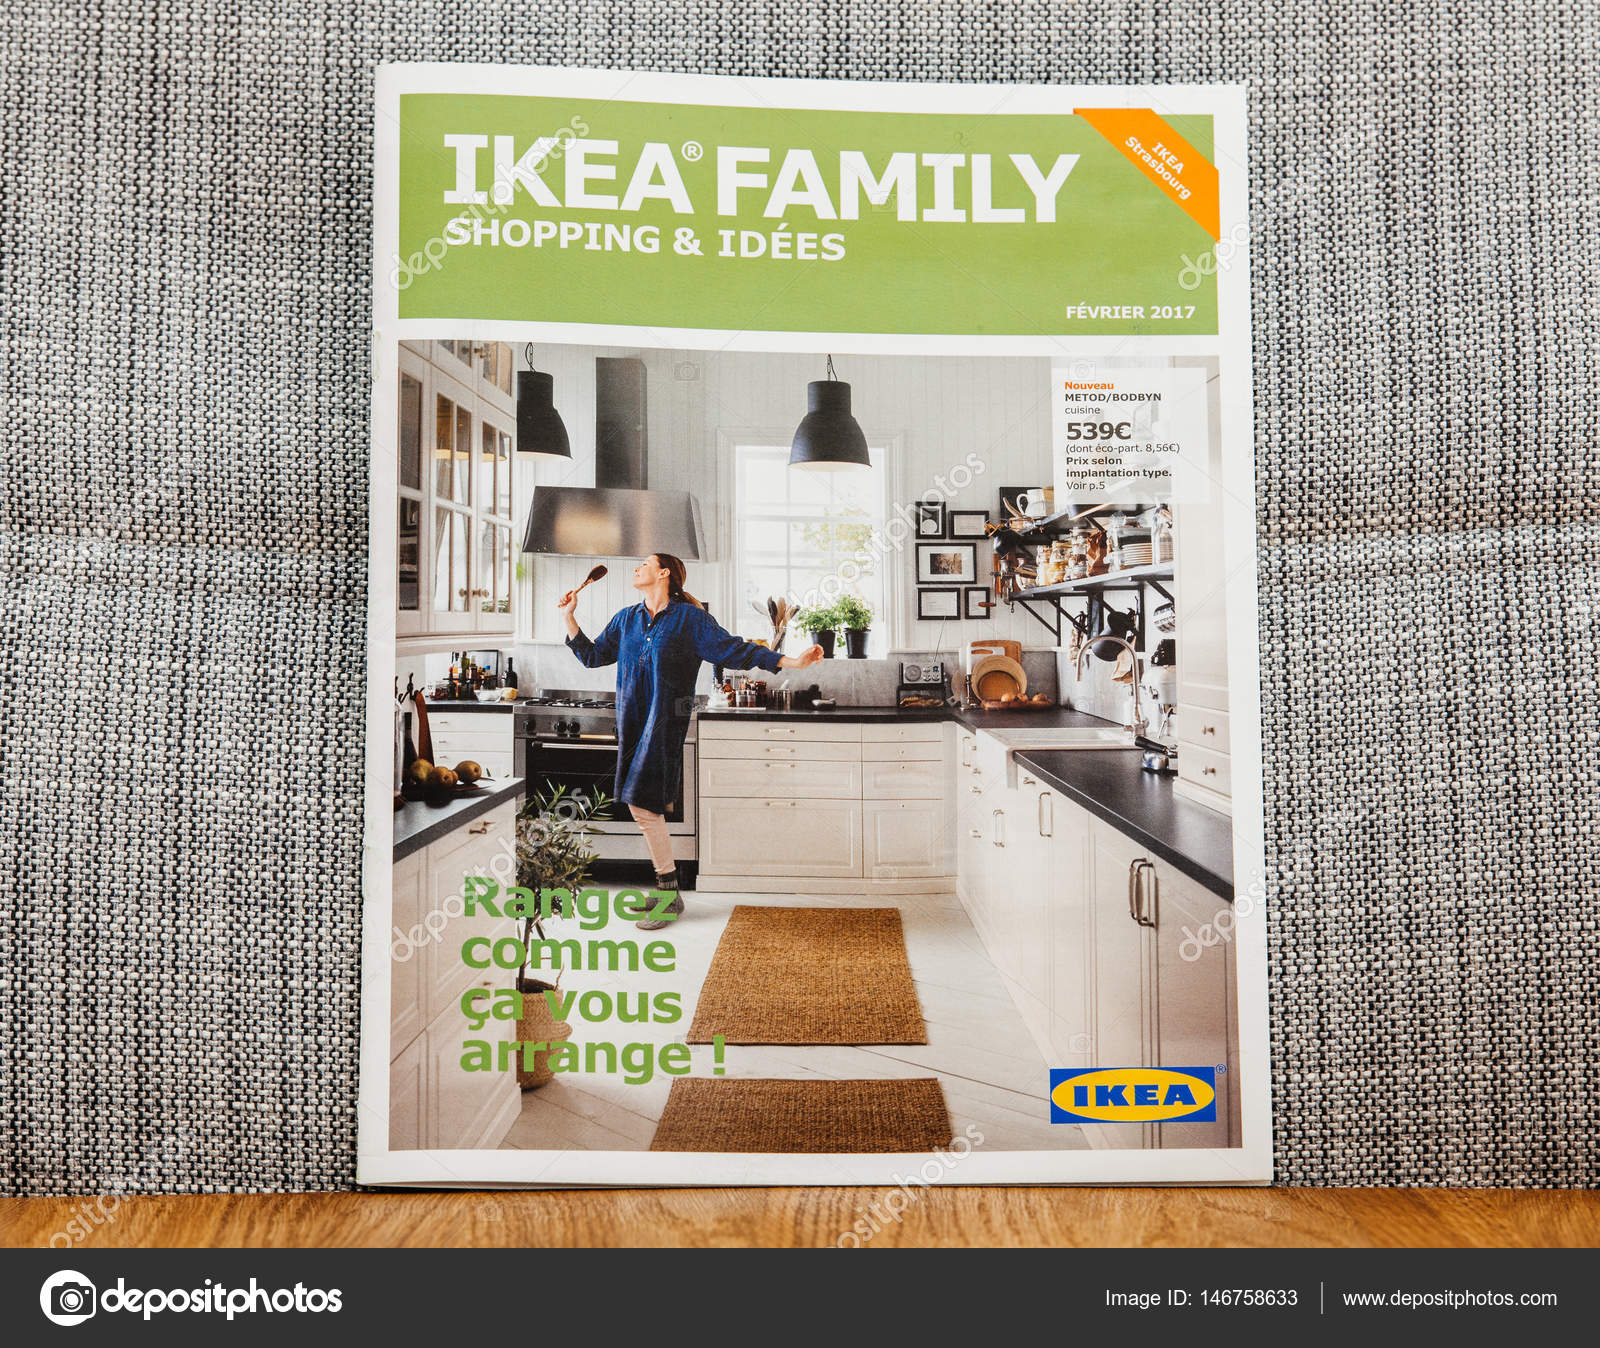 Ikea Küchen Katalog 2008 Pdf Ikea Downloaden Ikea Downloaden Ikea Matrassen Breed Krijg